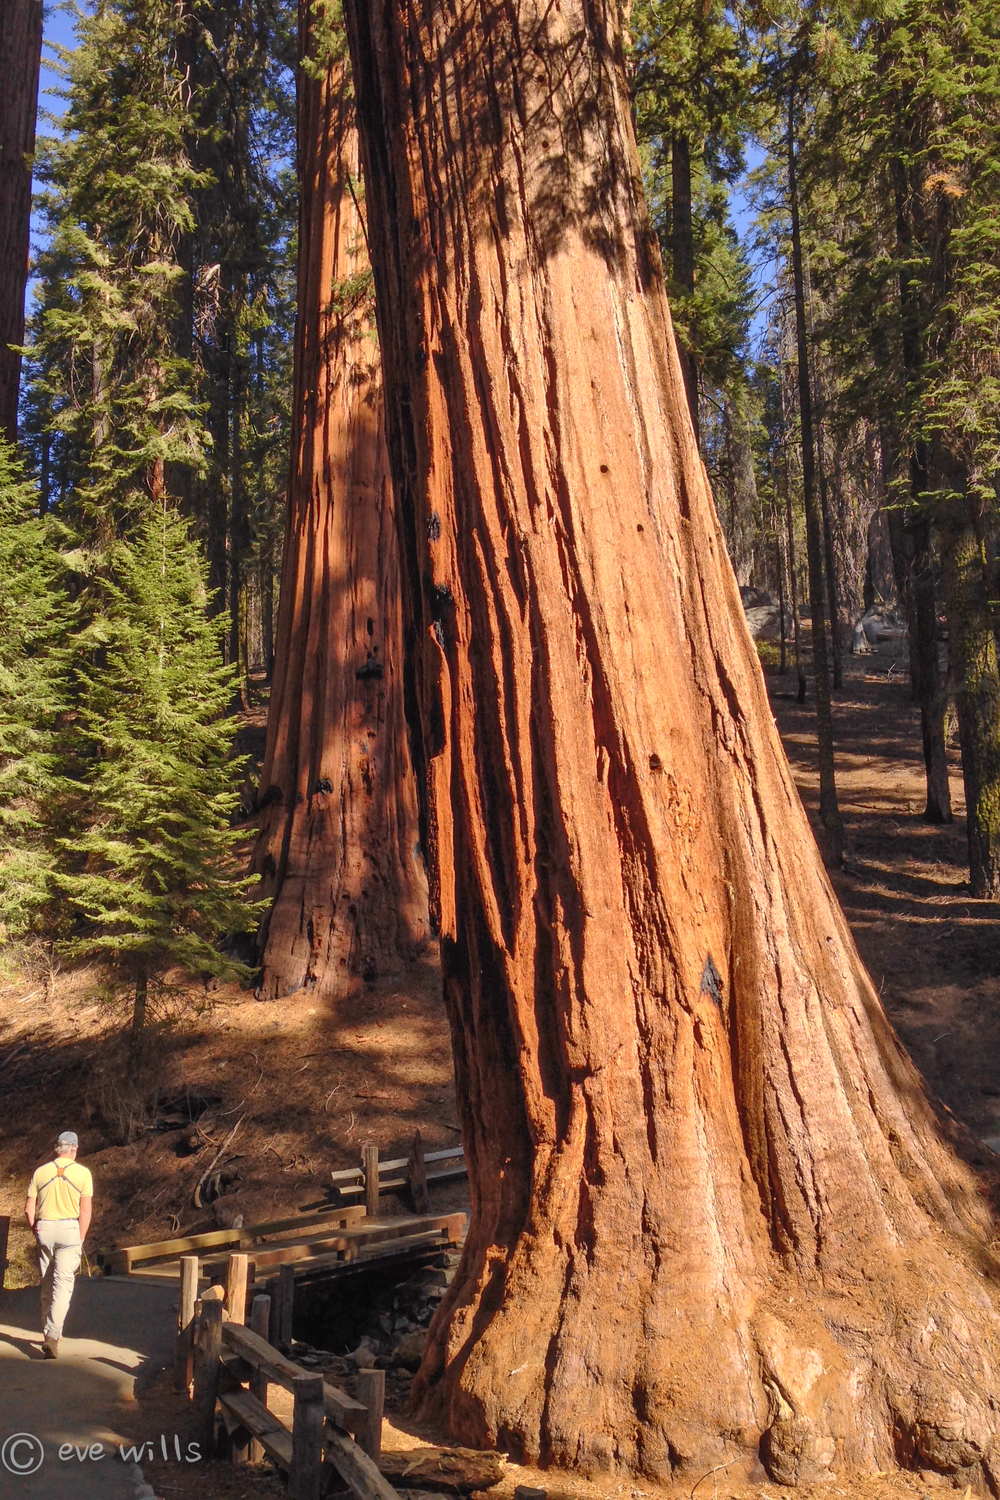 Ancient Giant Sequoias dwarf even Kurt - A humbling experience. (And we all know Kurt needs humbling)